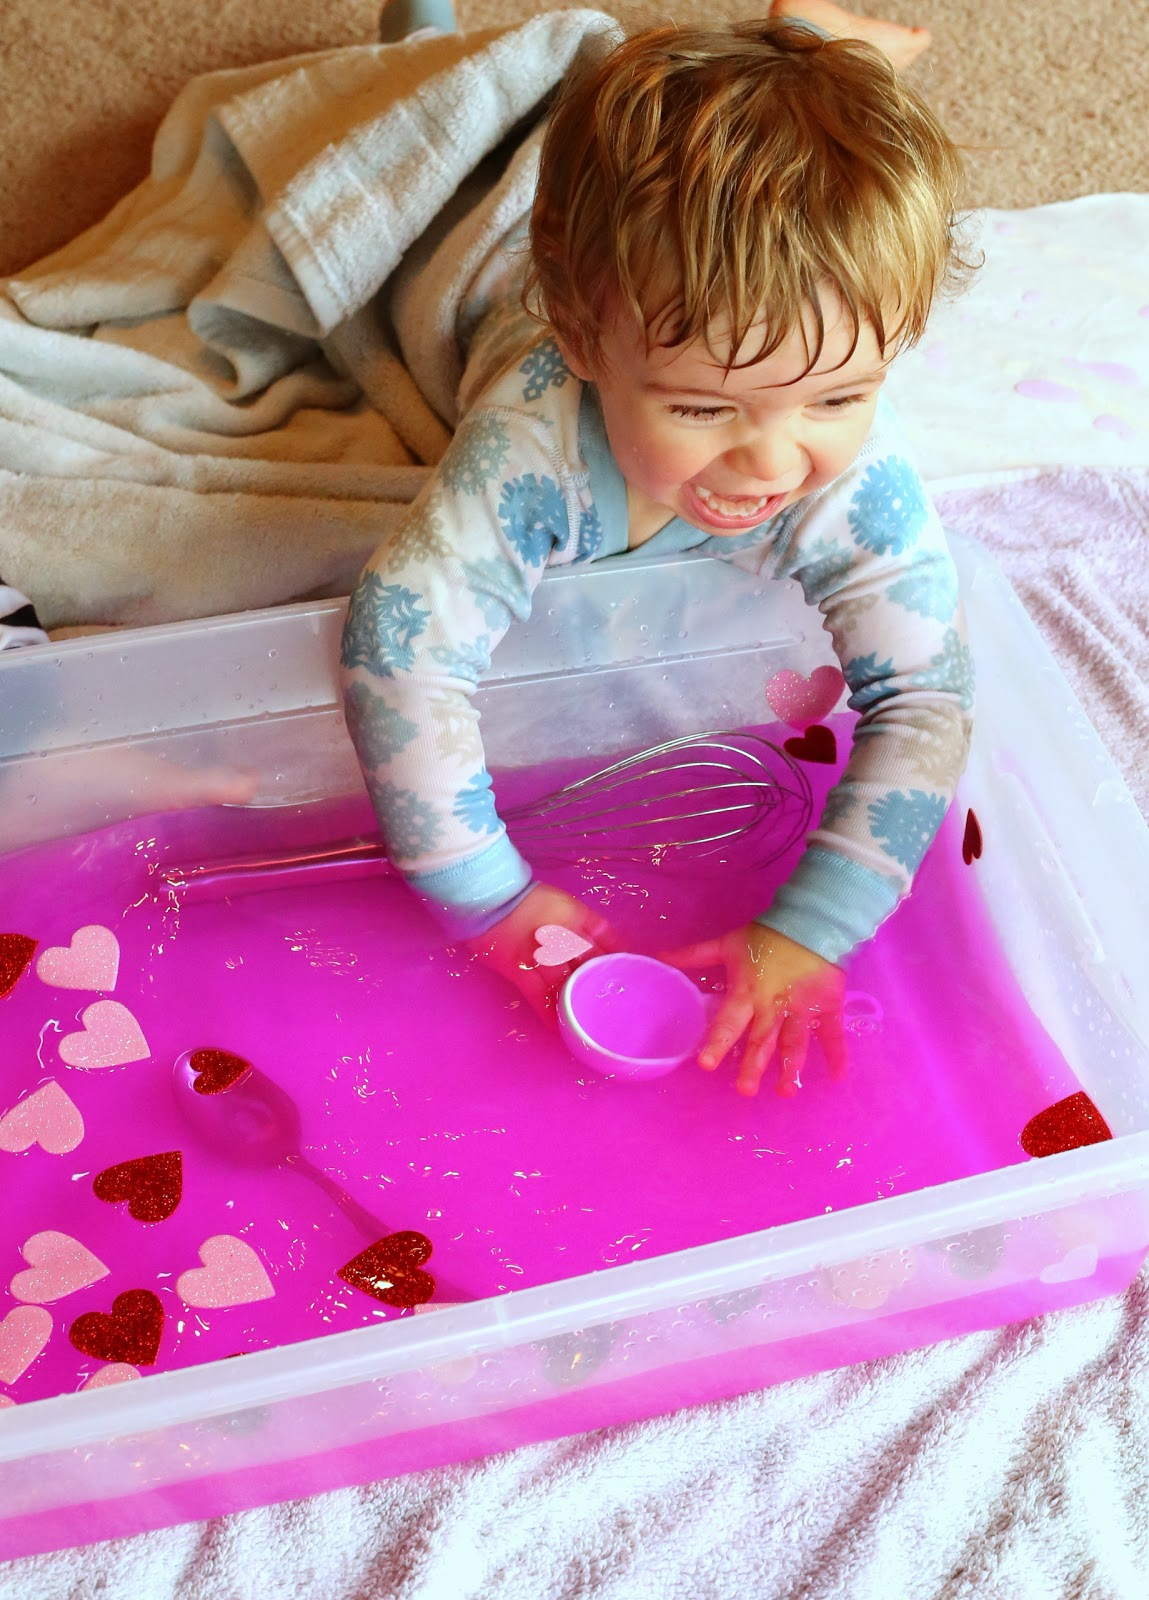 14 Valentineu0027s Day Activities For Toddlers And Preschoolers From Fun At  Home With Kids